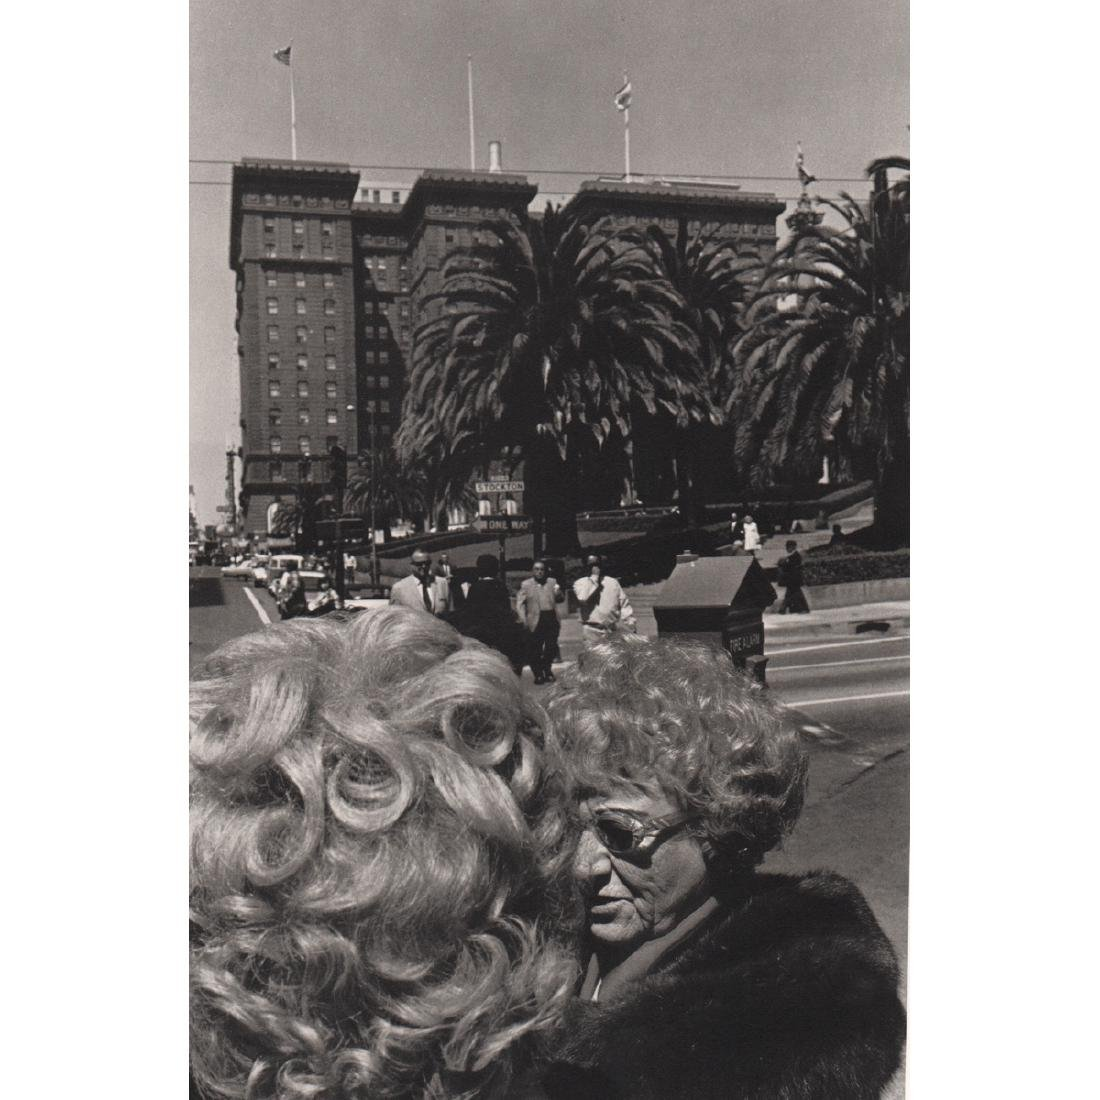 LEE FRIEDLANDER - San Francisco, CA 1970